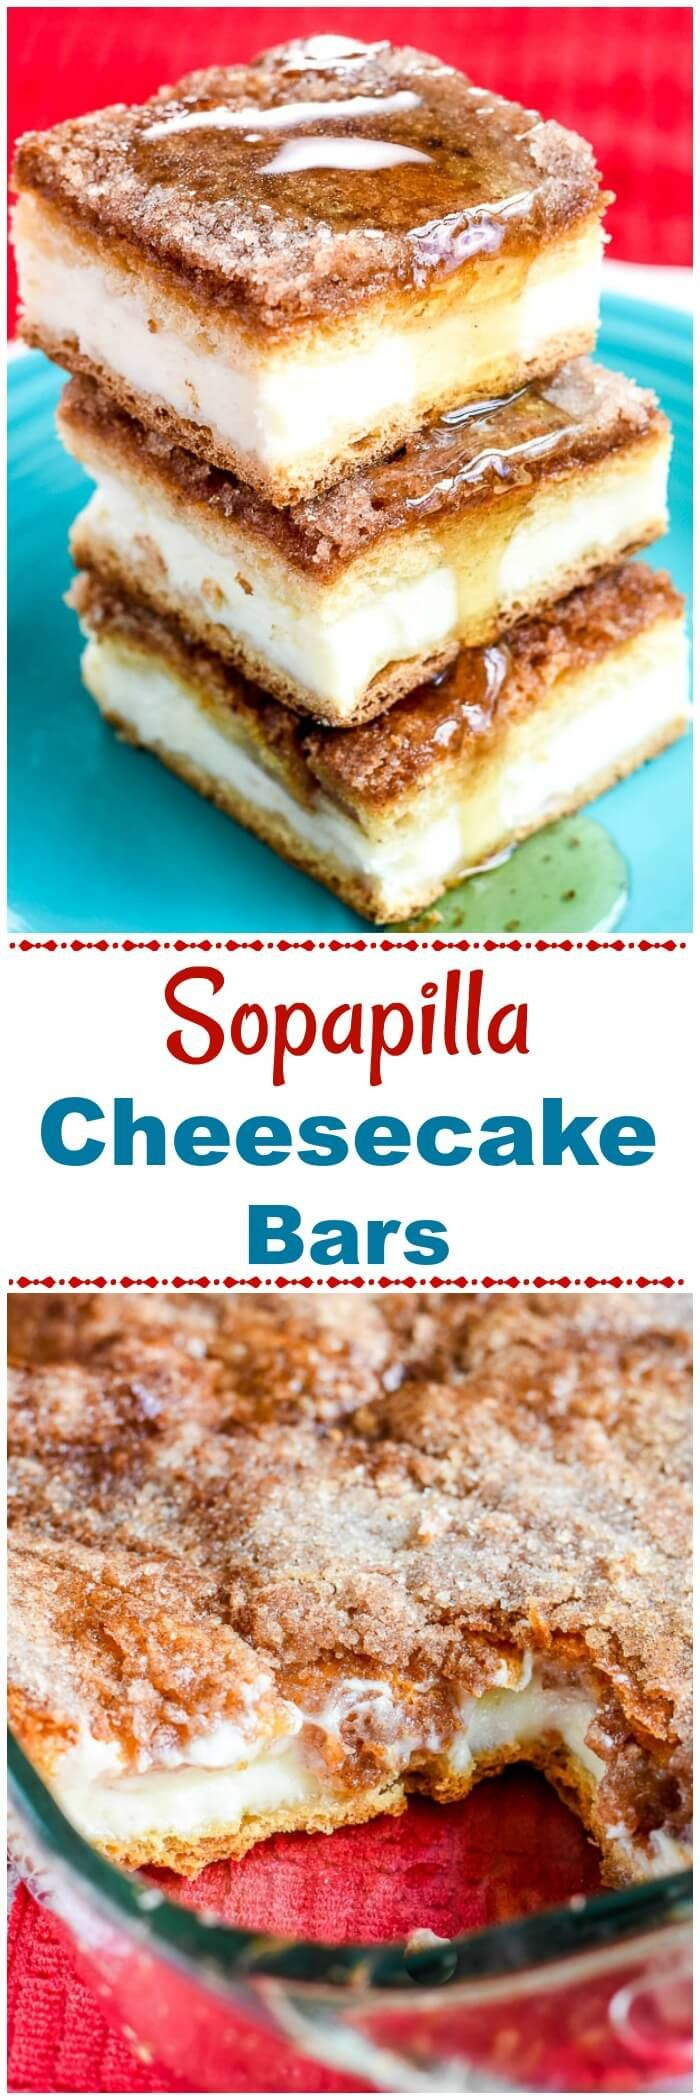 These Sopapilla Cheesecake Bars, inspired by the Mexican dessert called sopapillas, have a sweet, creamy cheesecake filling tucked between 2 crescent roll pastry sheets, and are topped with butter, cinnamon, and sugar and drizzled with honey. via @flavormosaic